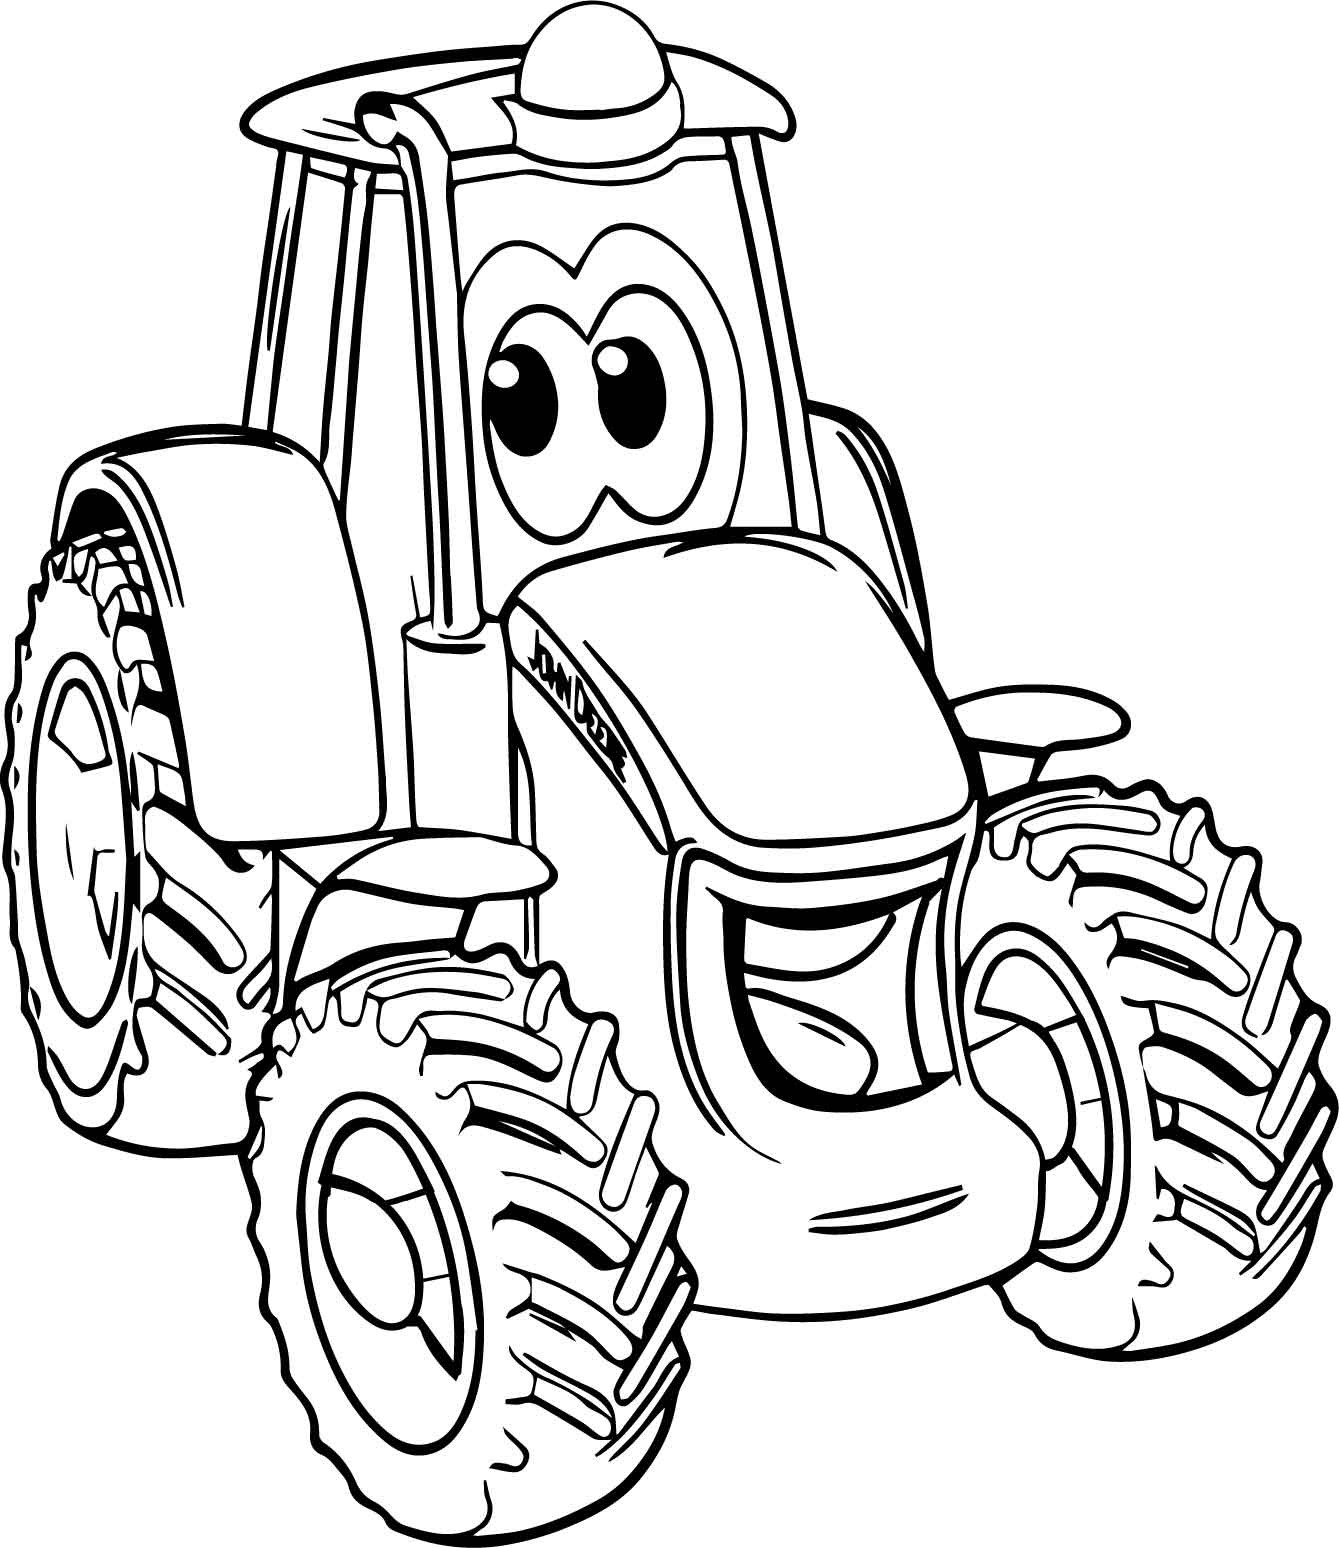 tractor colouring pictures tractor coloring pages download and print tractor pictures colouring tractor